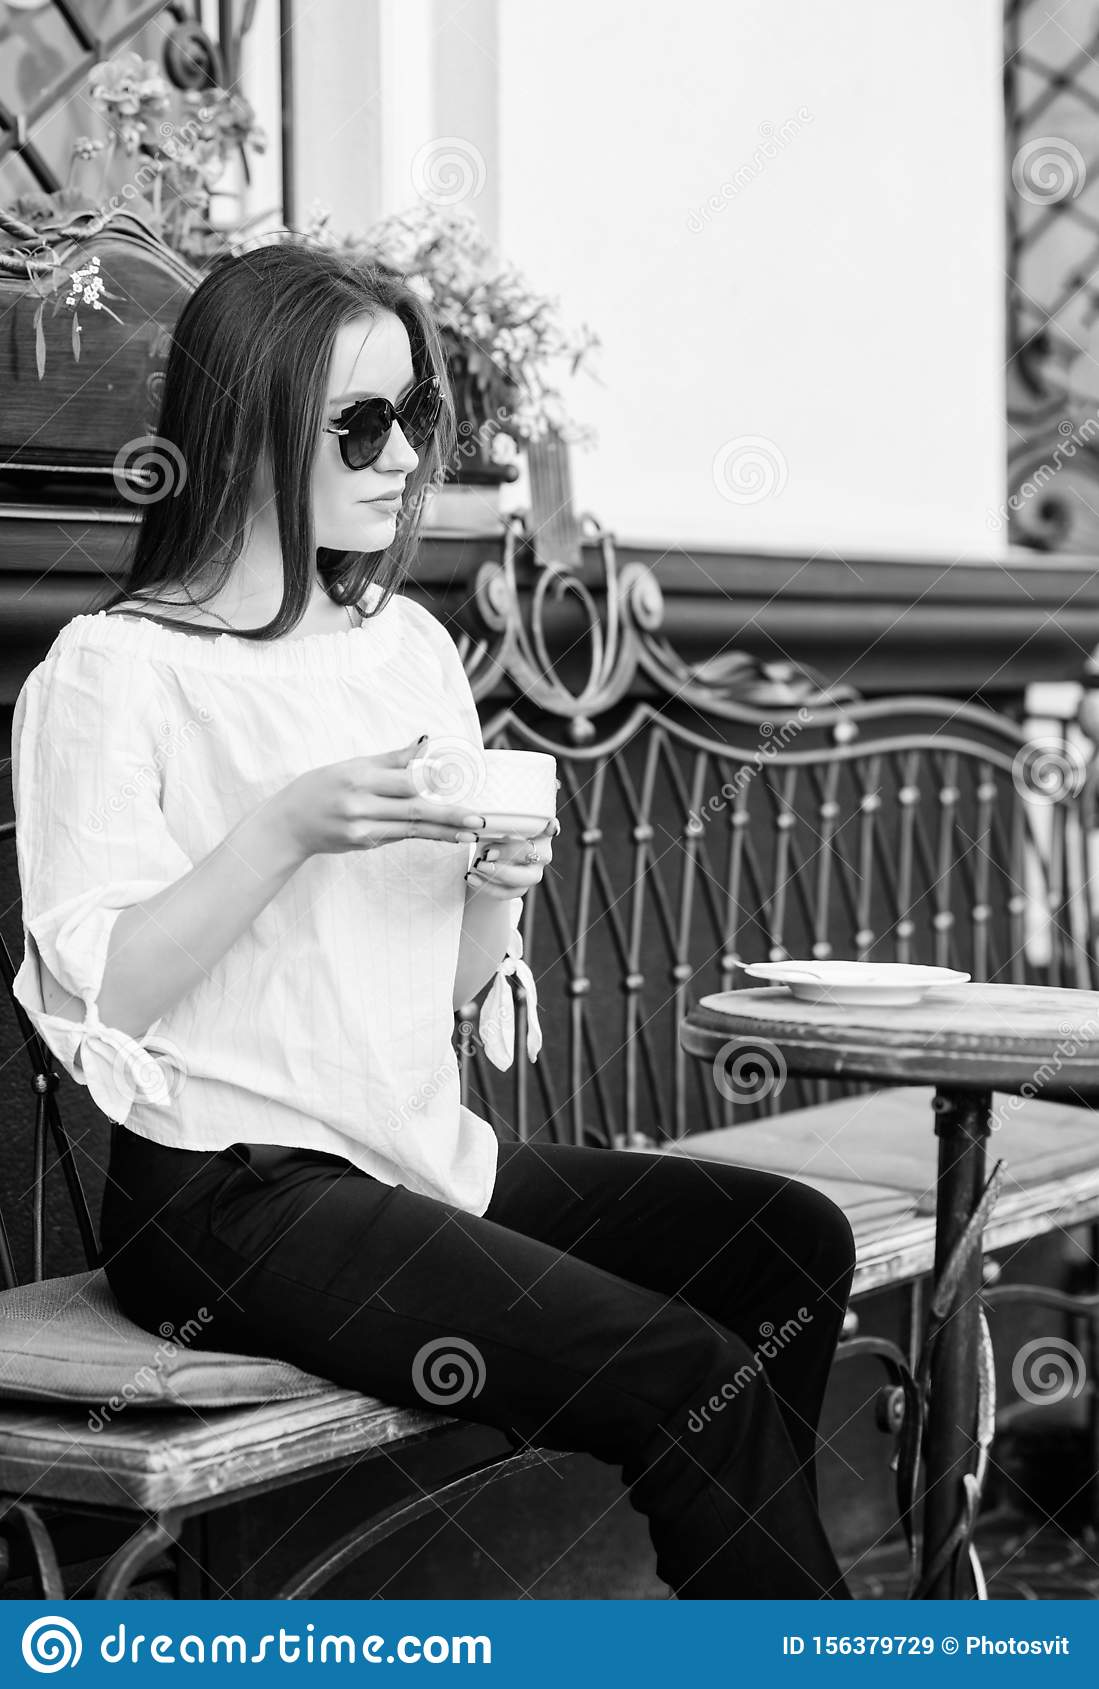 Summer fashion beauty. Meeting in cafe. girl relax in cafe. Business lunch. stylish woman in glasses drink coffee. good